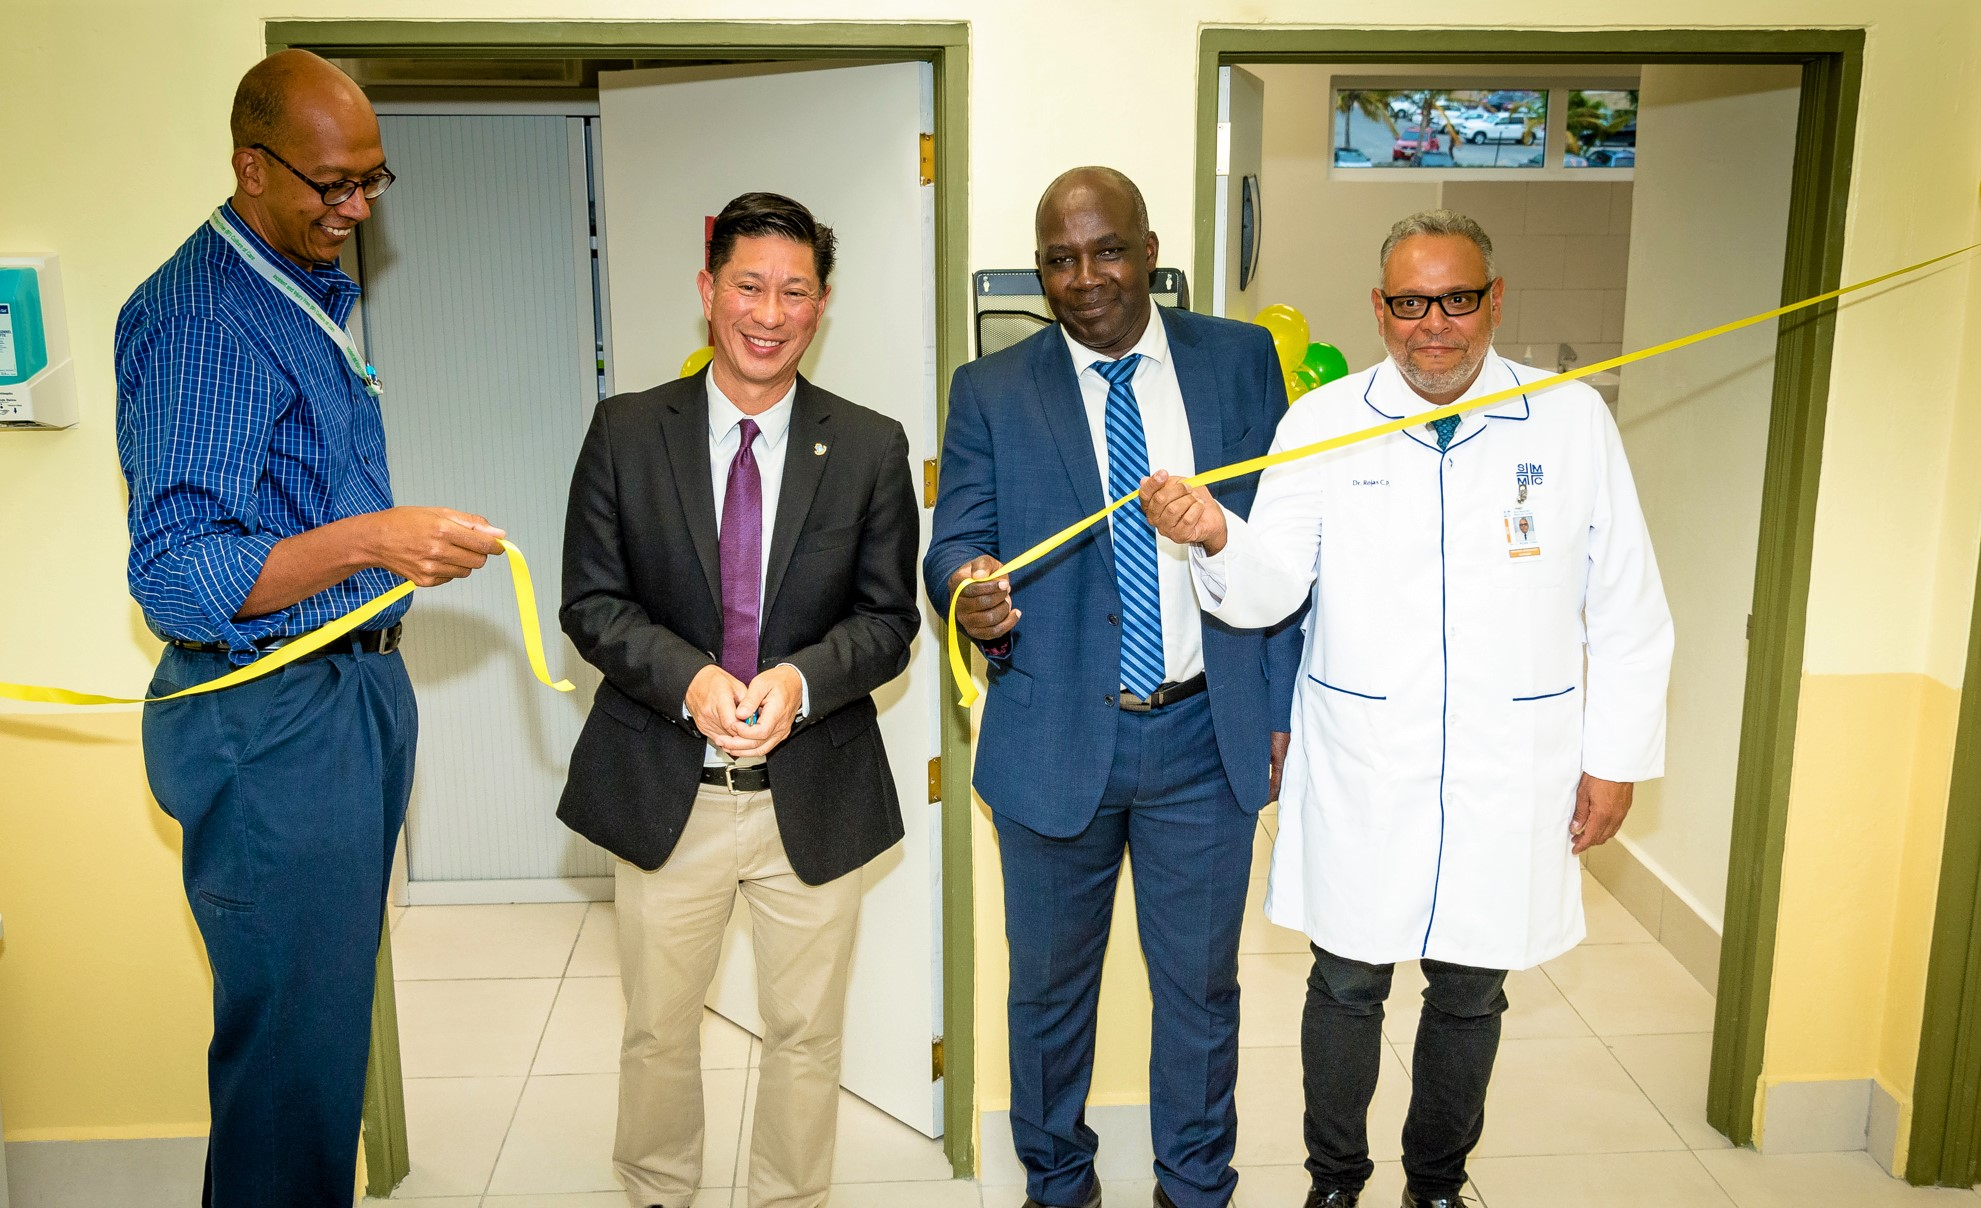 SMMC officially opens new Urology Clinic